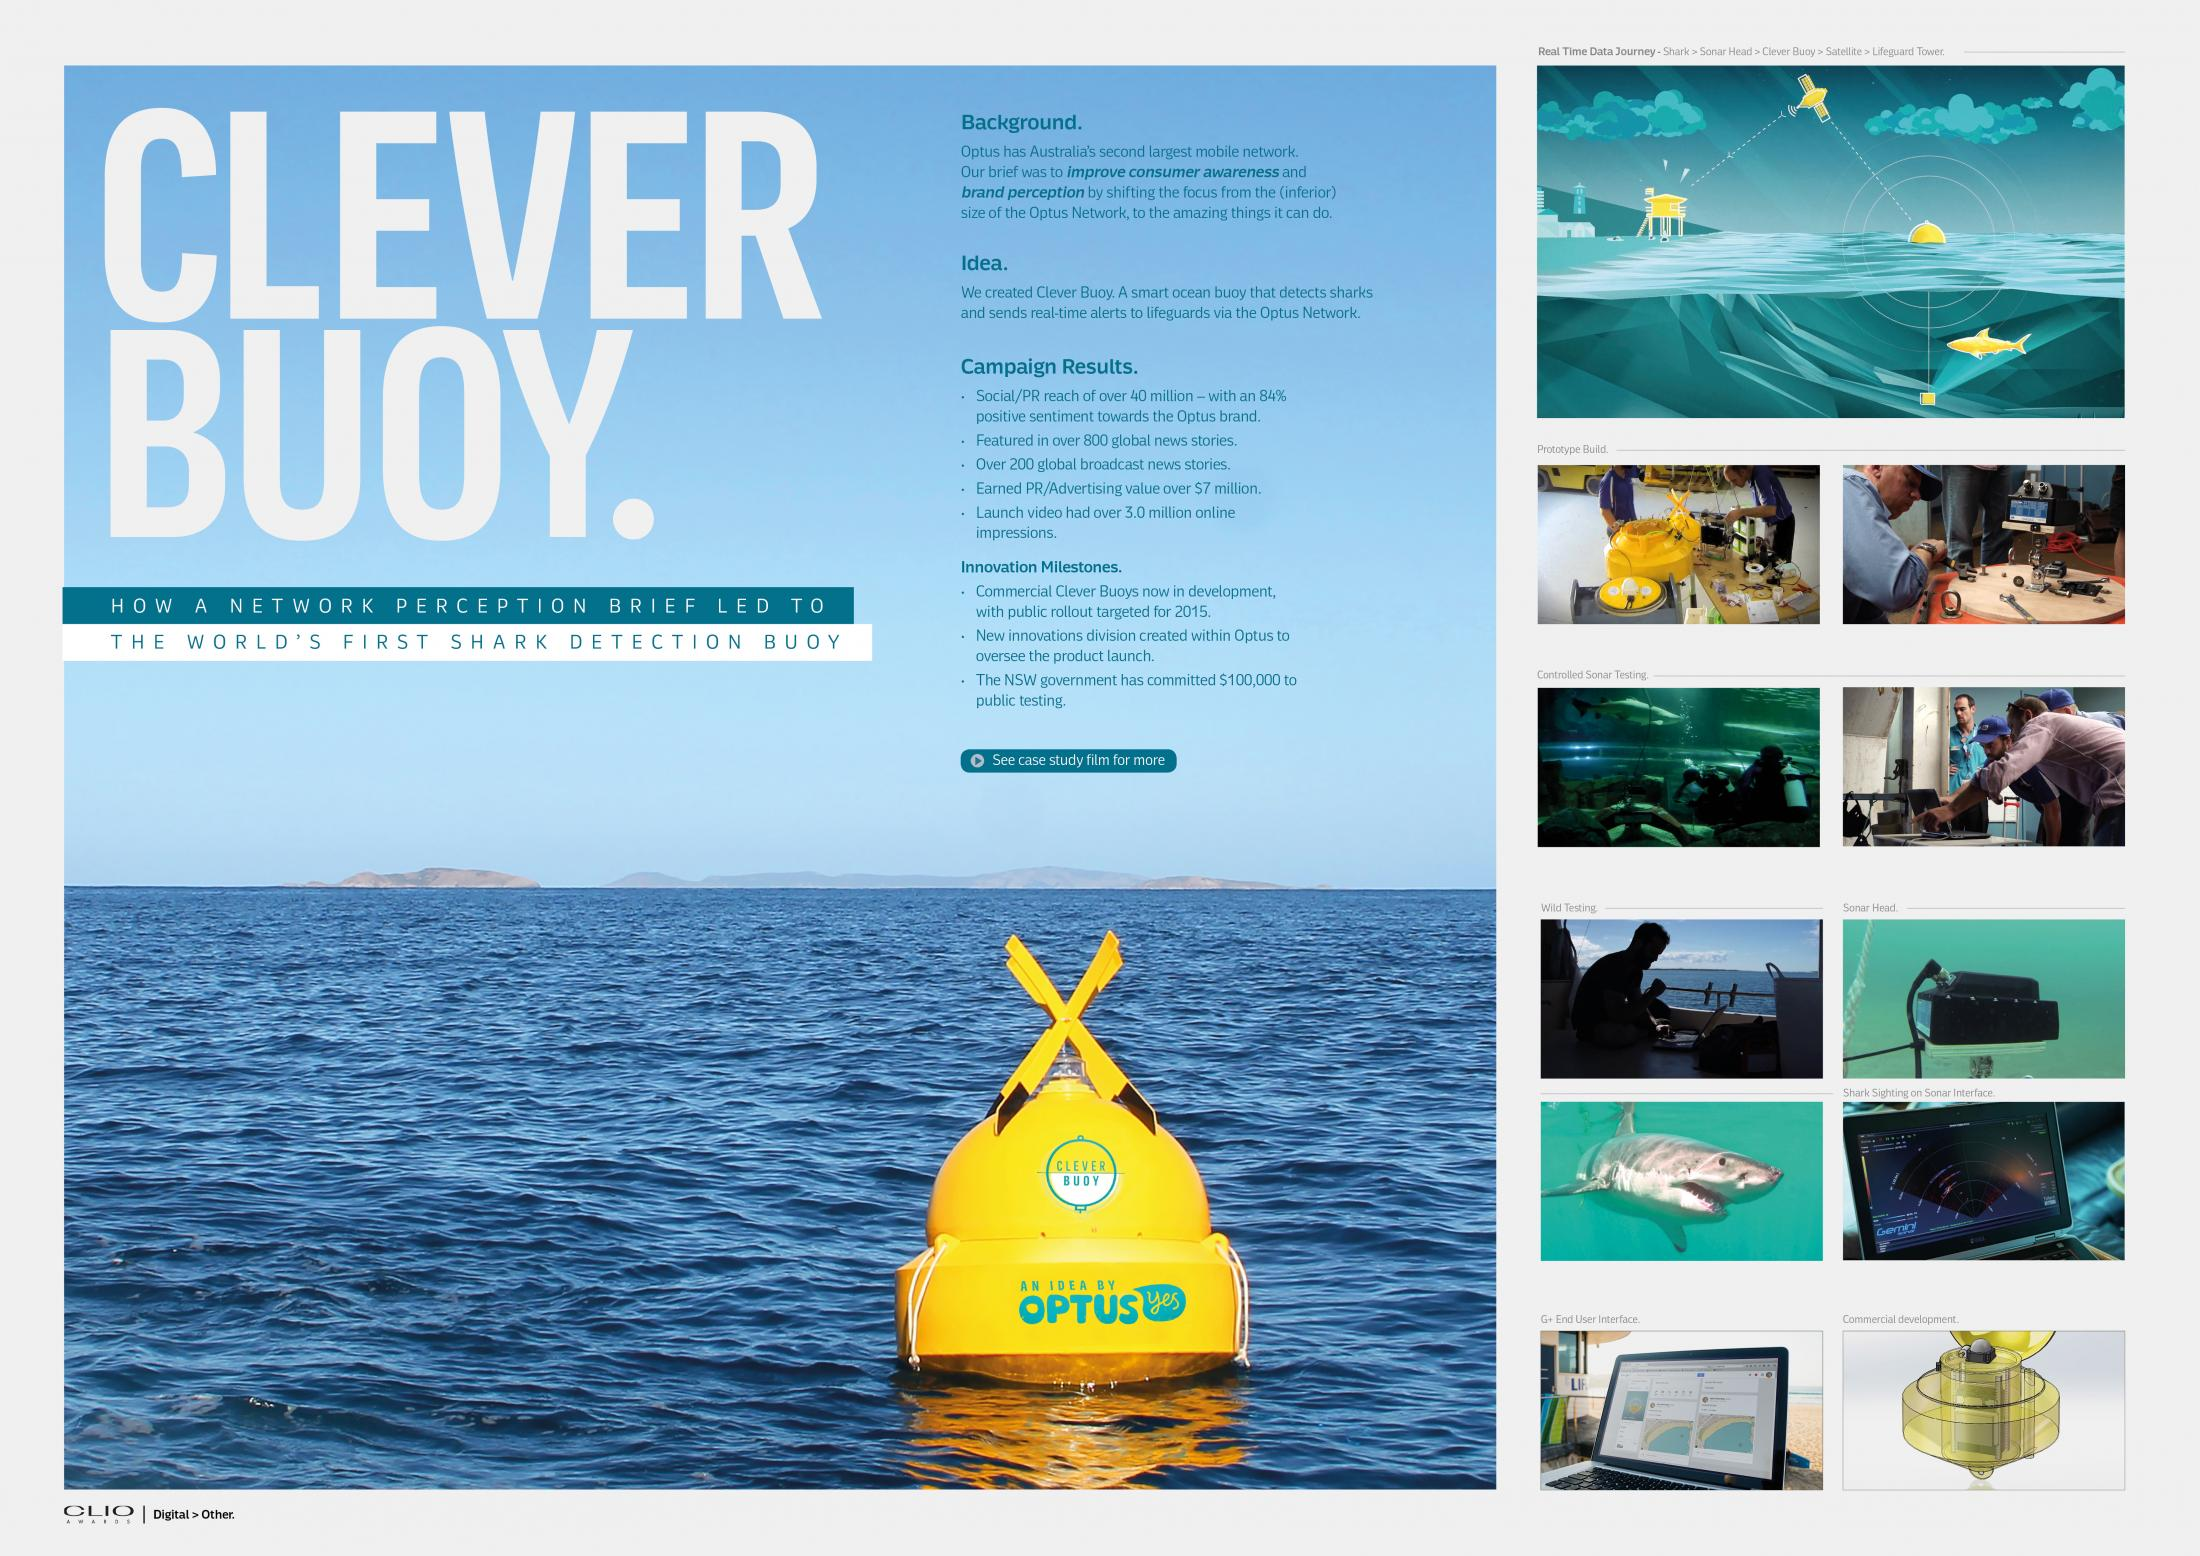 Image Media for Clever Buoy